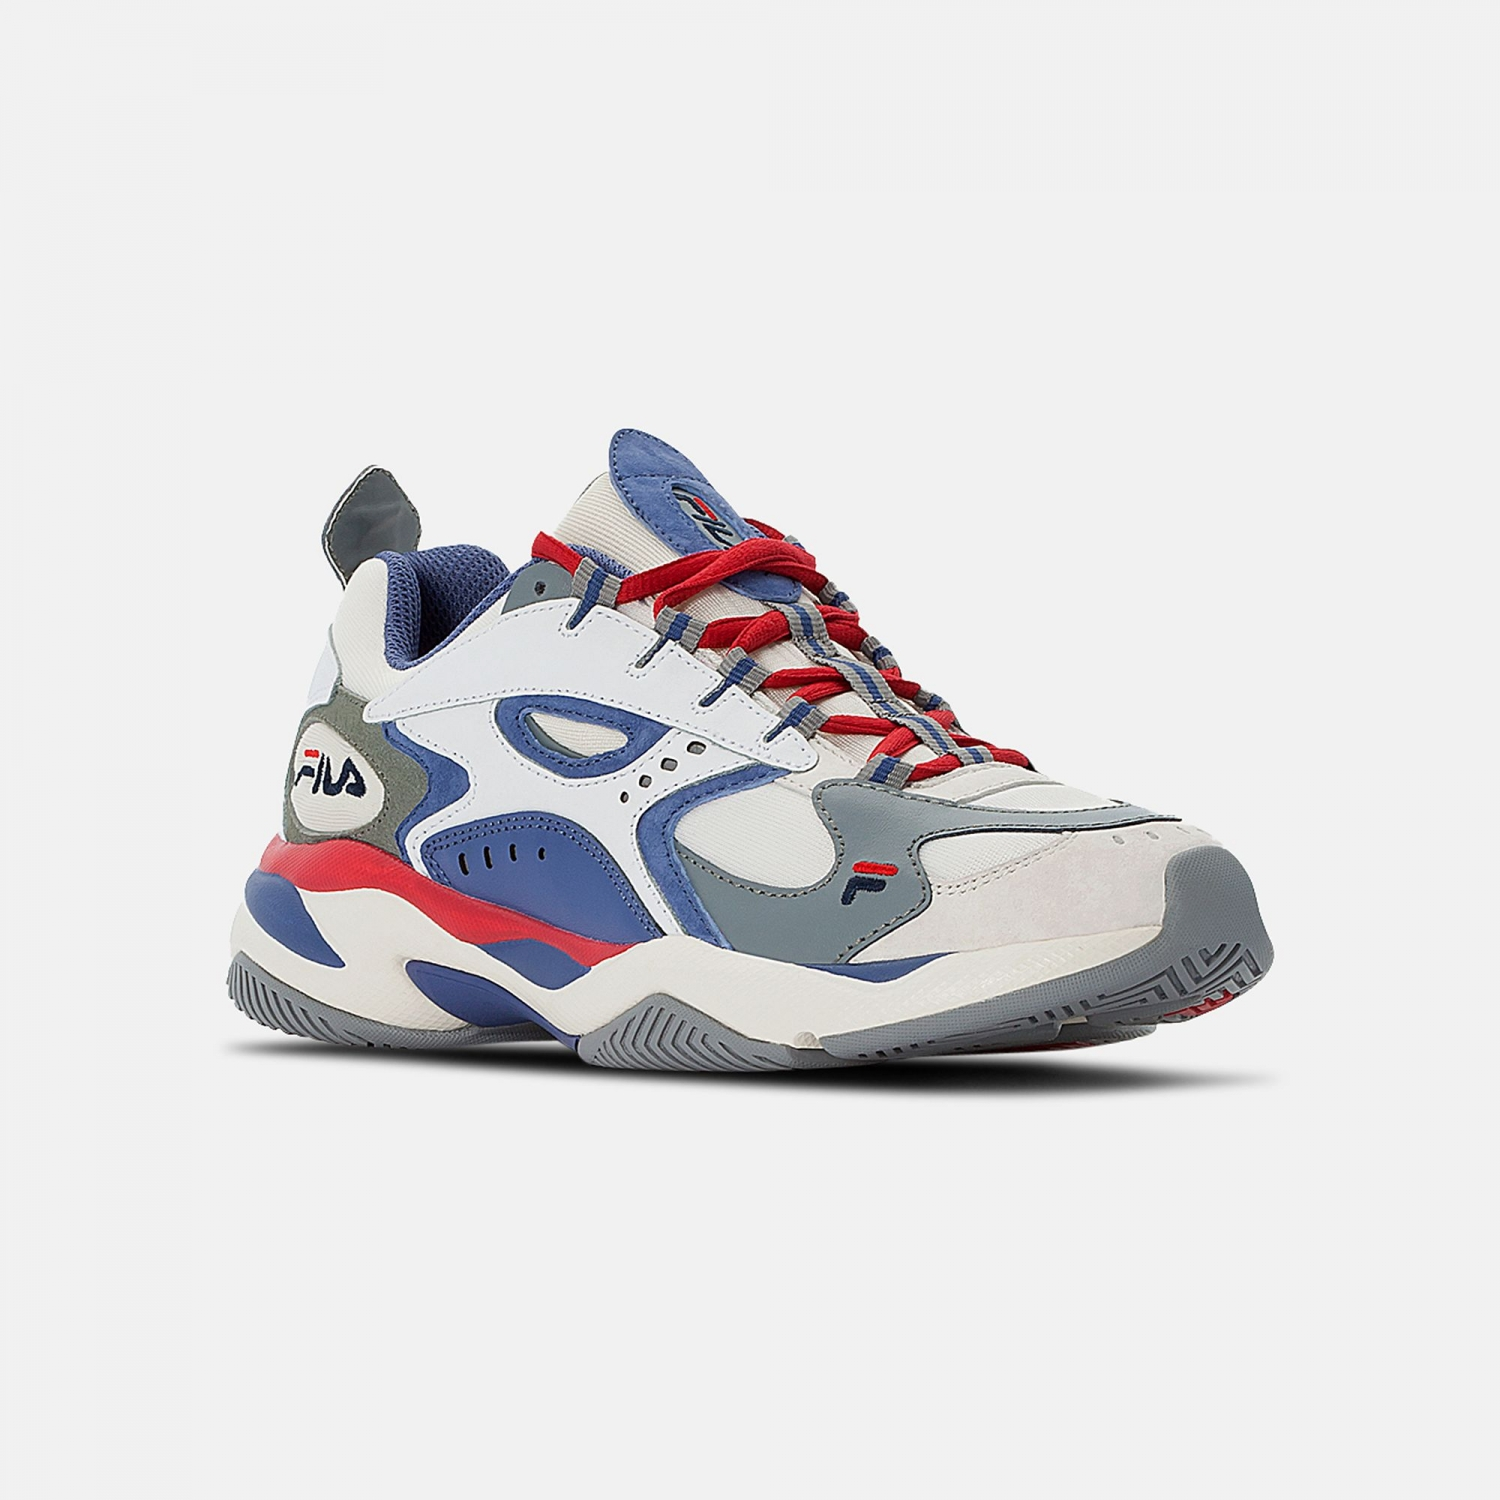 Fila Boveasorus Wmn grey-blue-red Bild 2